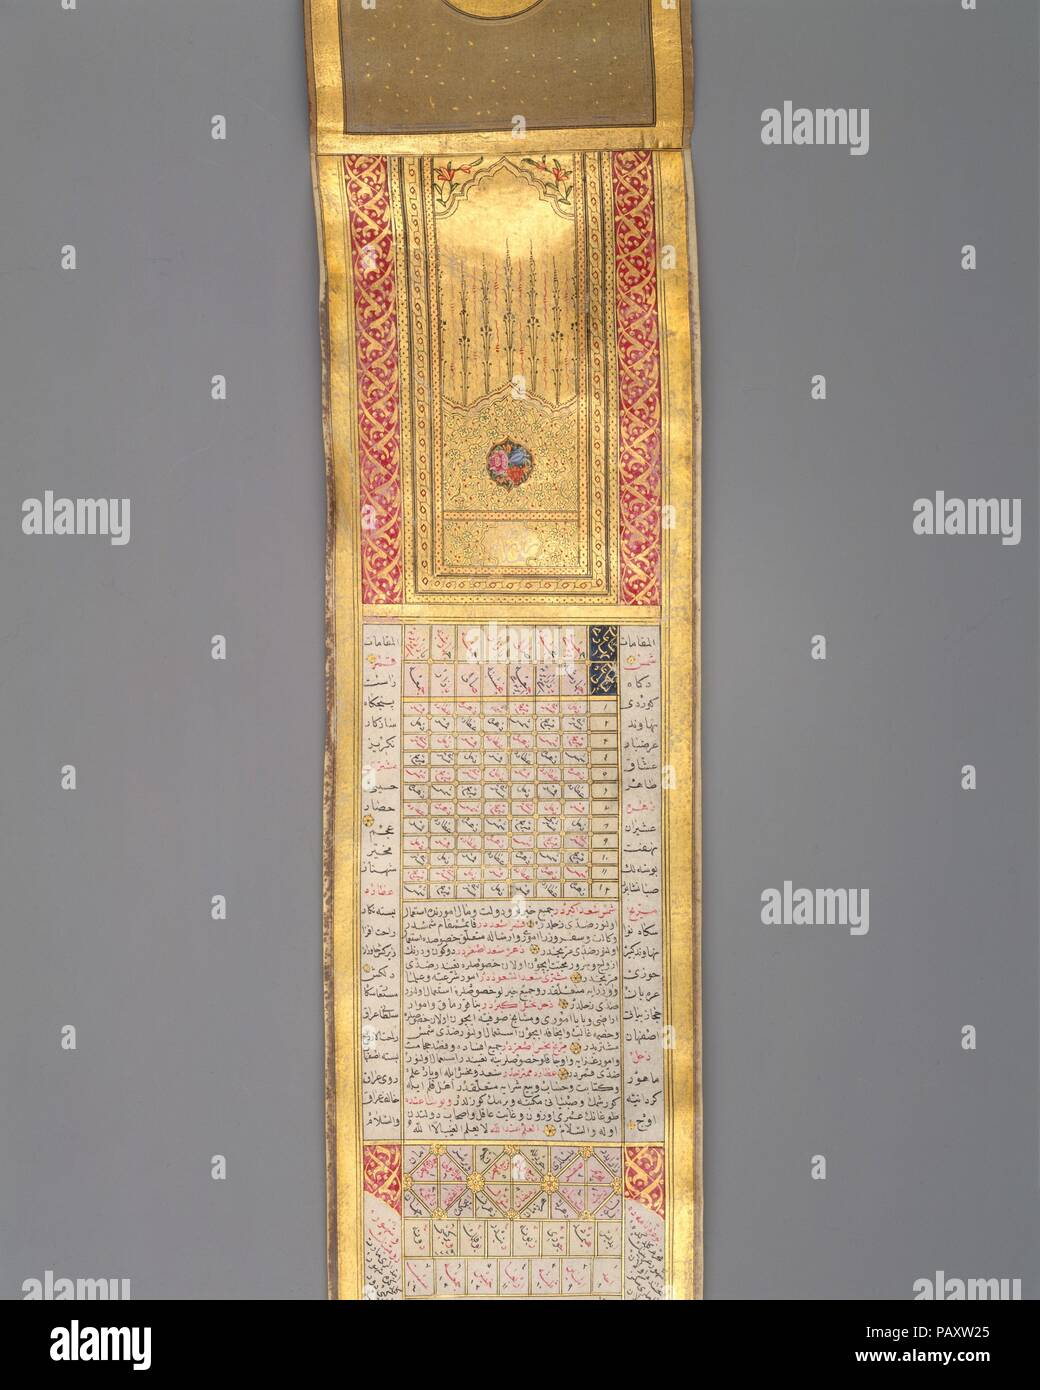 Illuminated Codices Stock Photos Images Stambul Qur An Mini 30 Juz Calendar Almanac In Scroll Form Calligrapher Signed And Dated By Katib Muhammad Ma